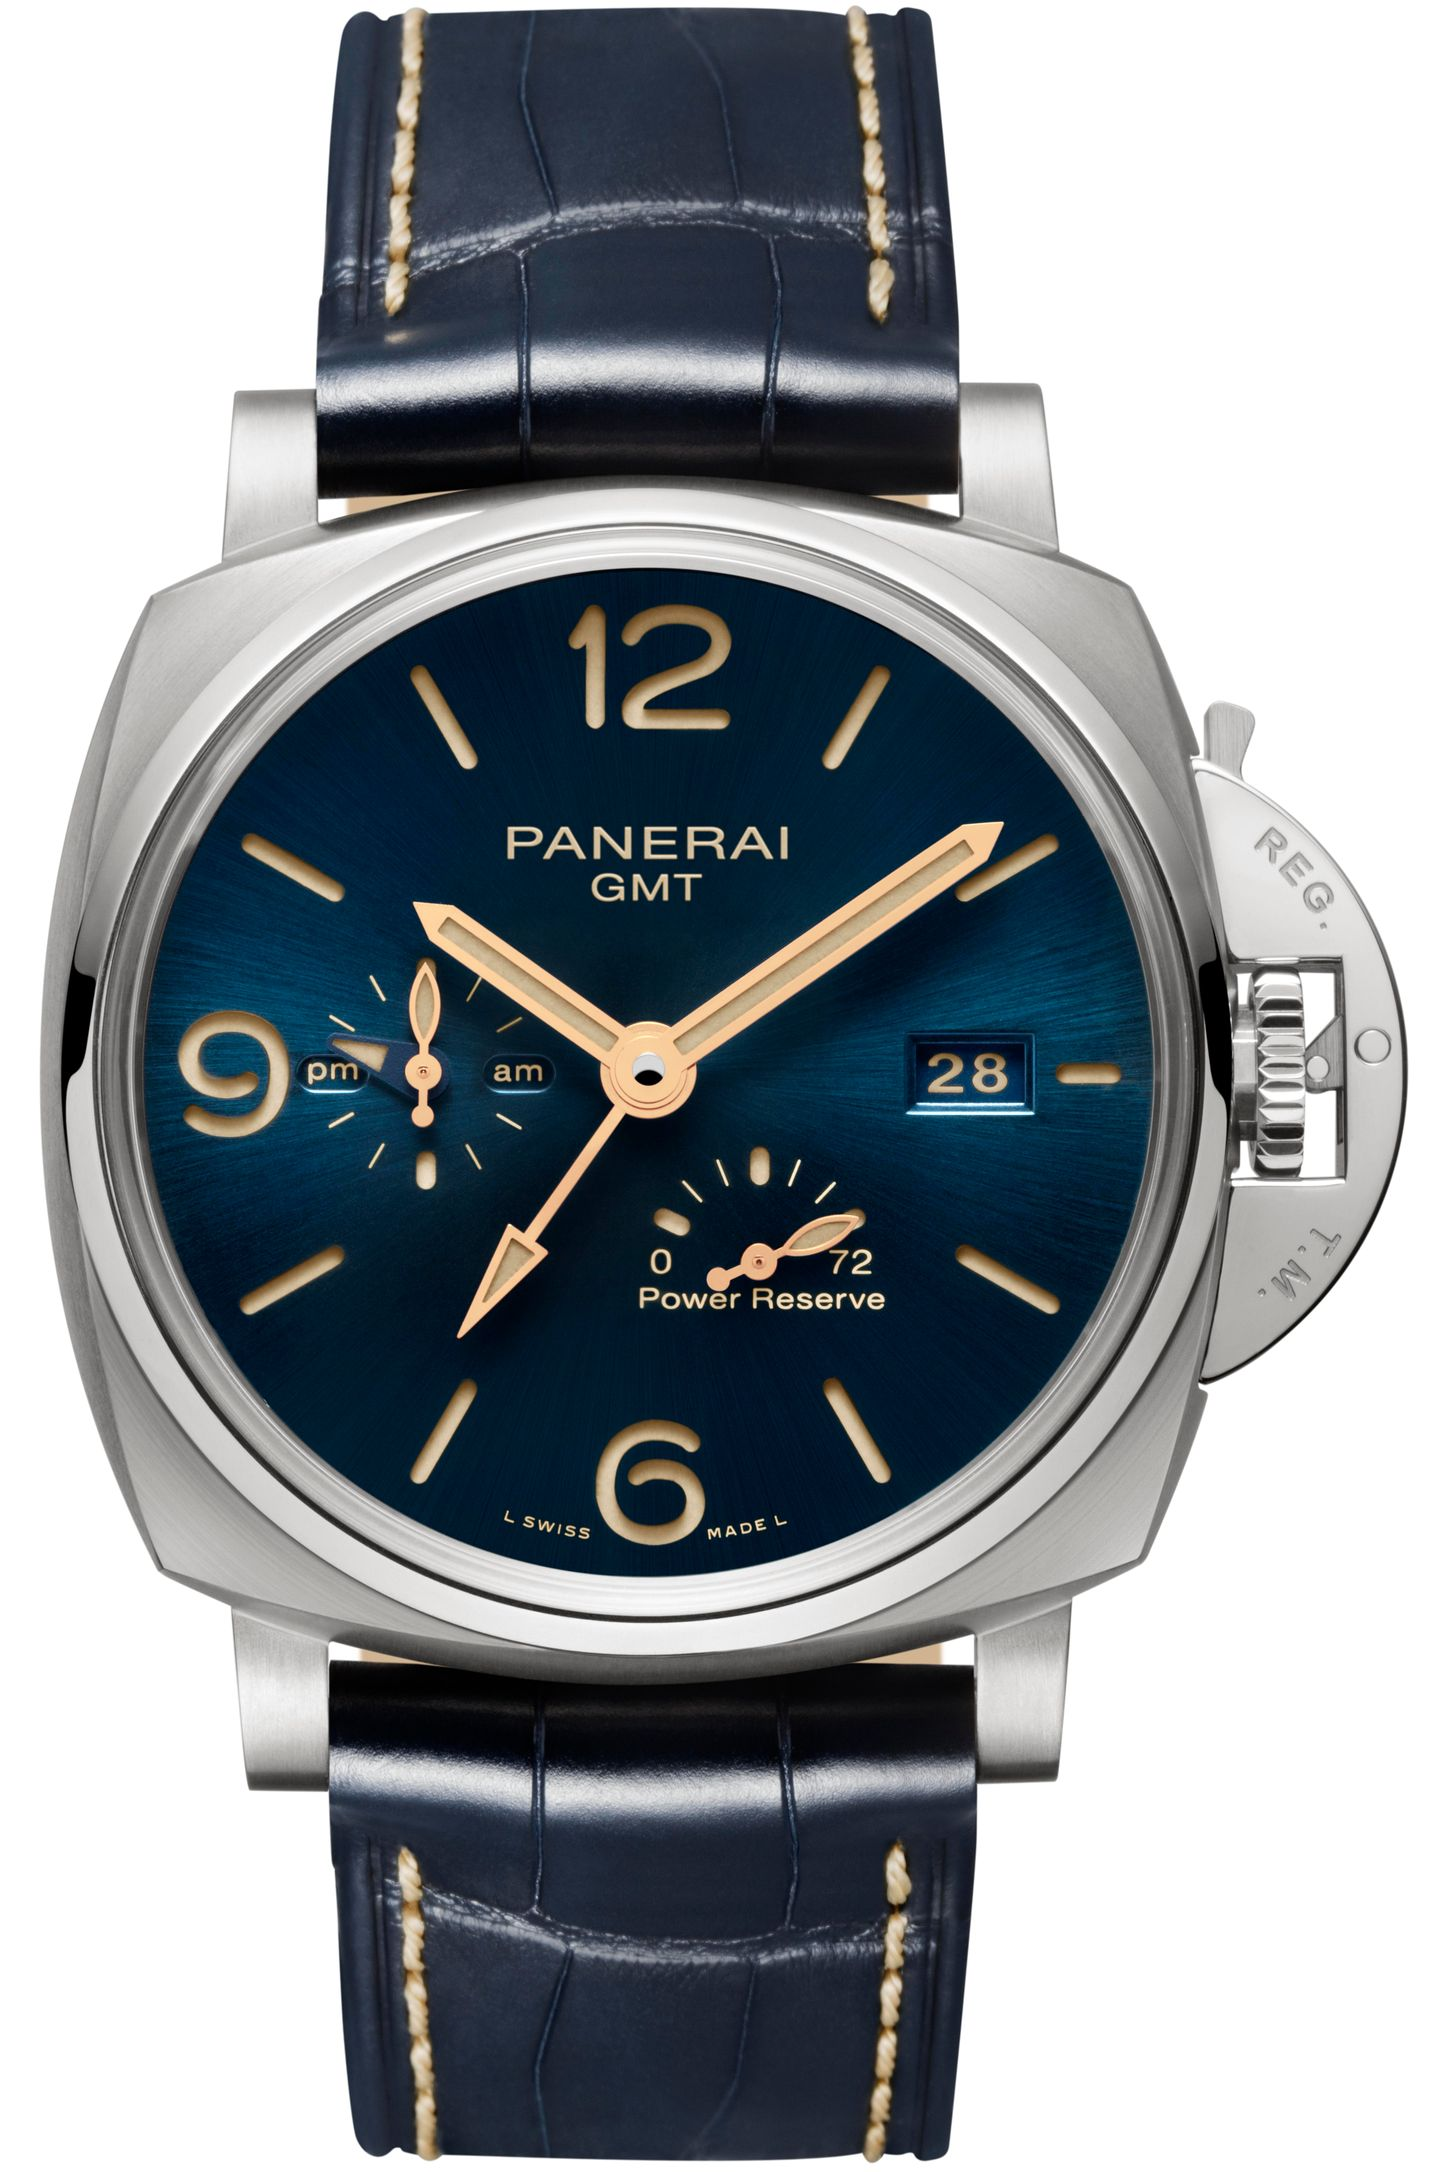 Panerai Luminor Due GMT PAM00964